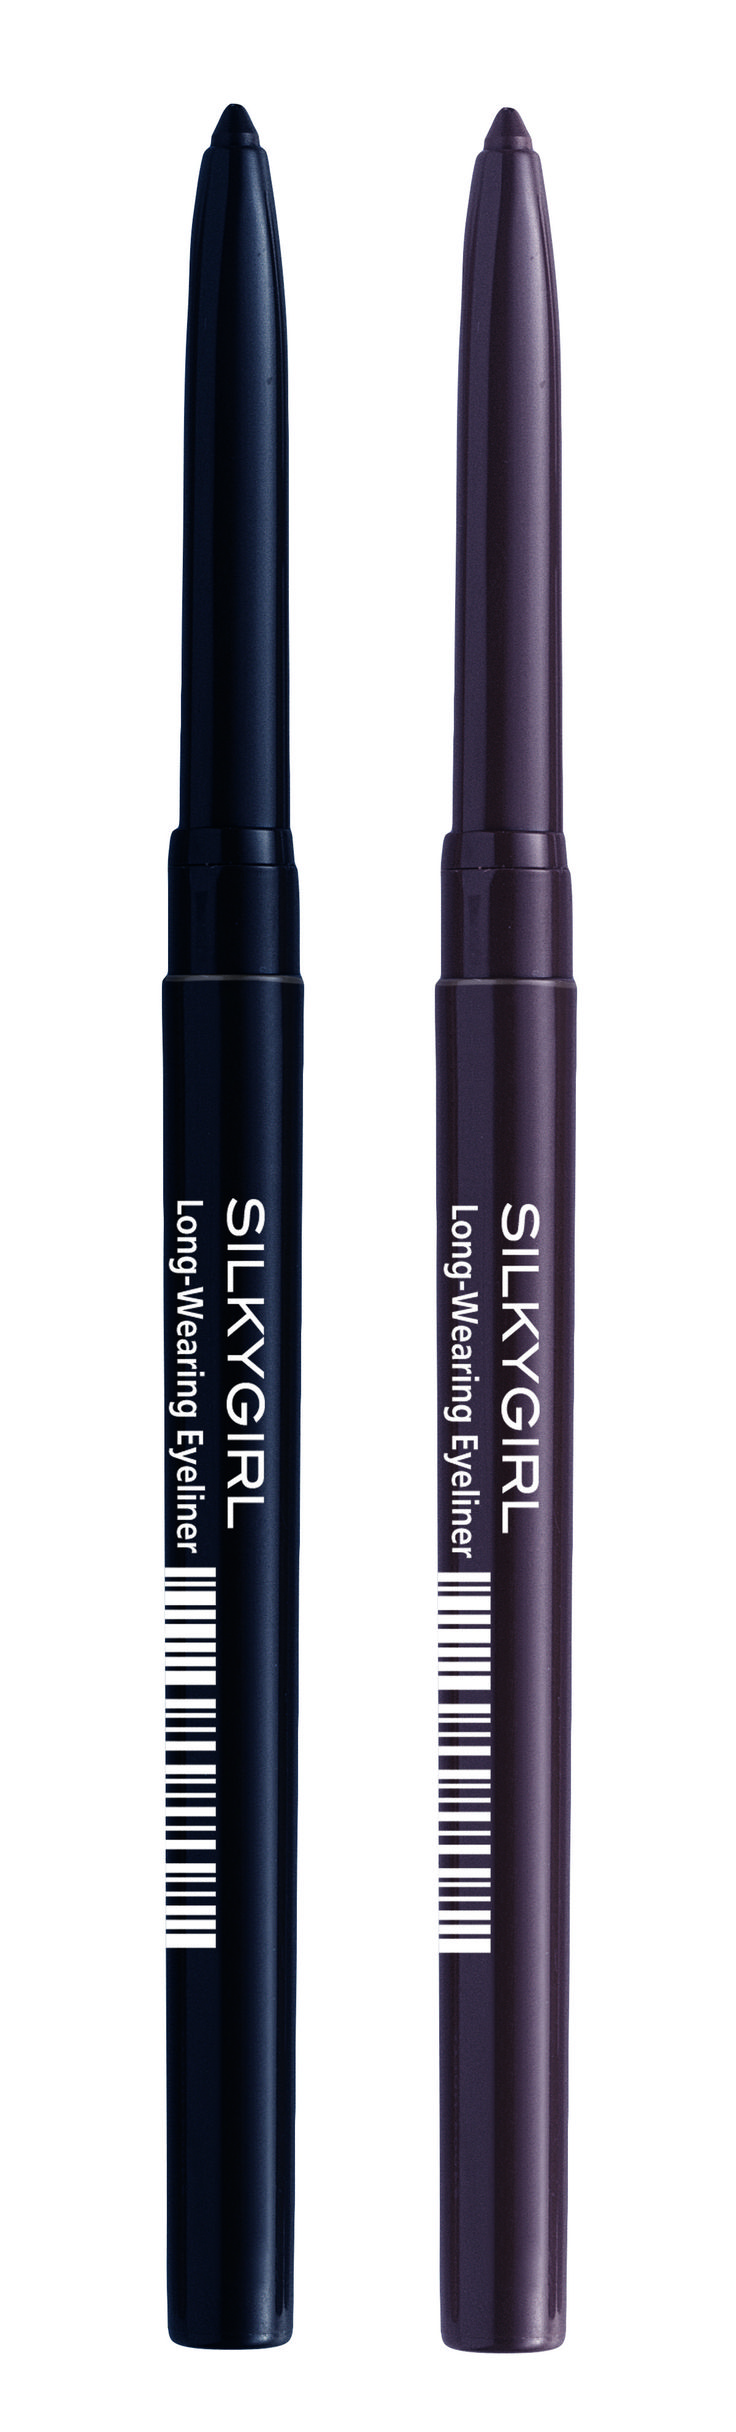 LONG WEARING EYELINER - SILKYGIRL - Waterproof, long last and no fragrance